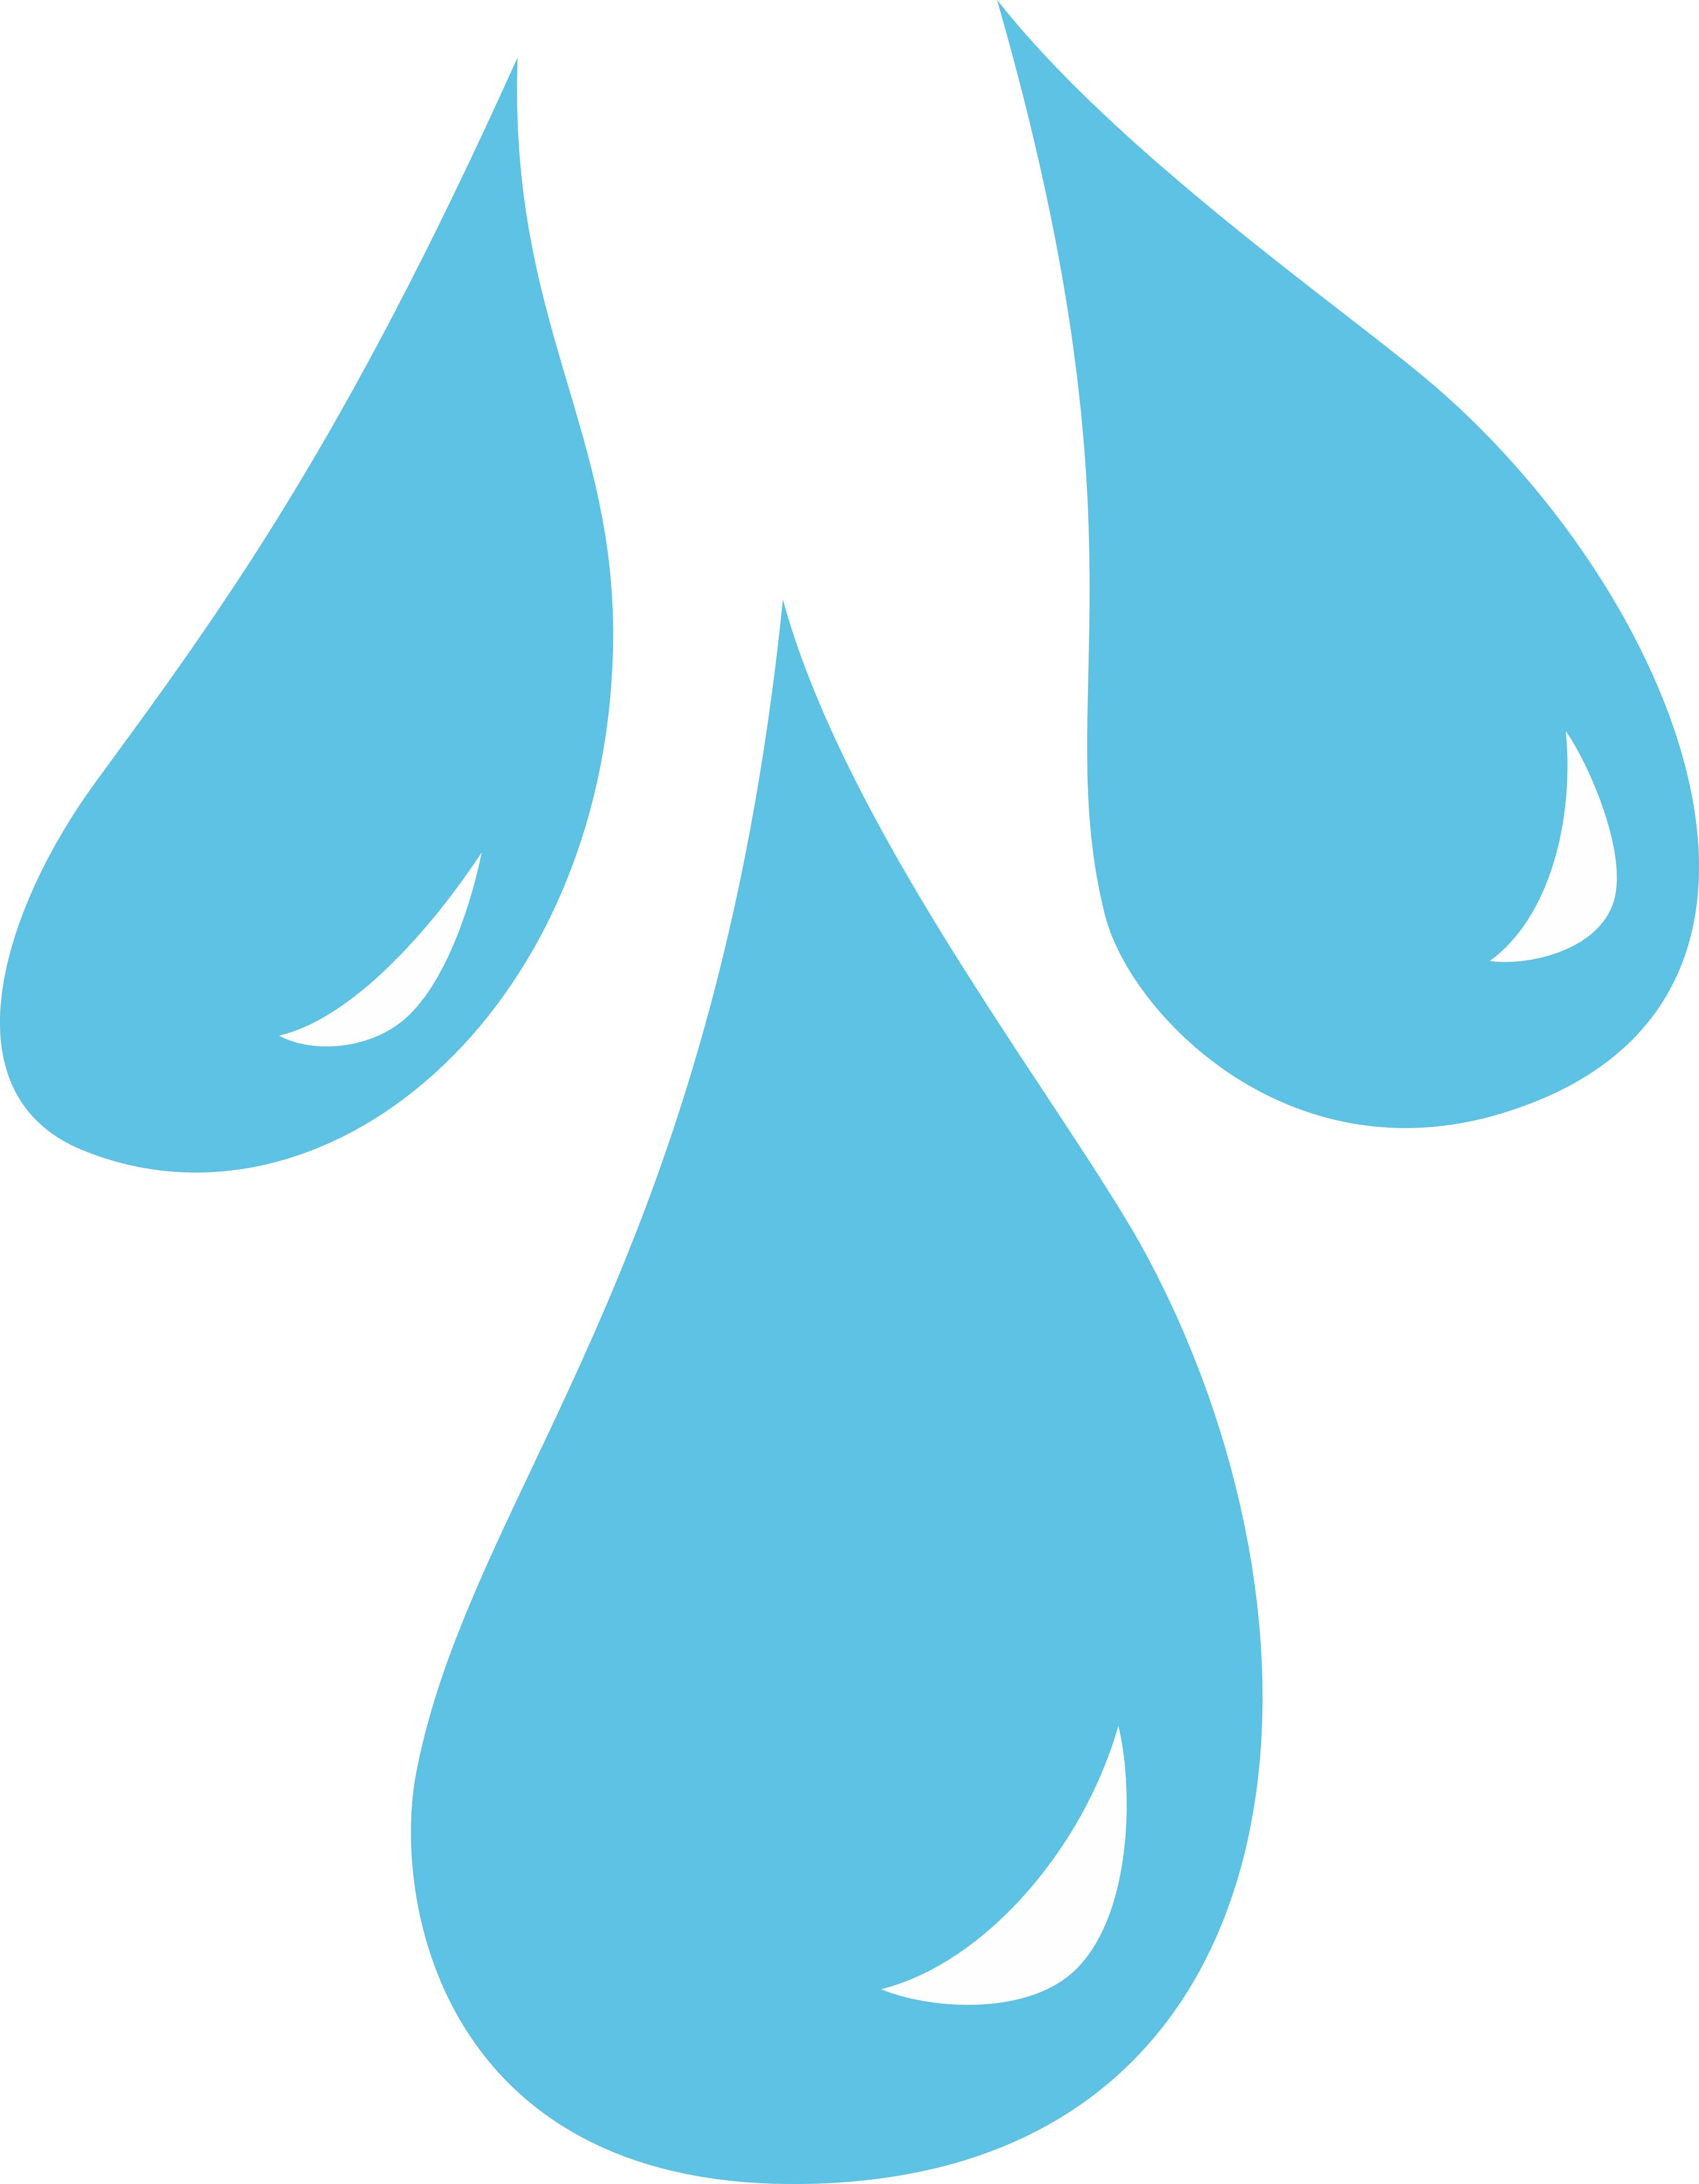 Raindrop clipart kawaii.  collection of water